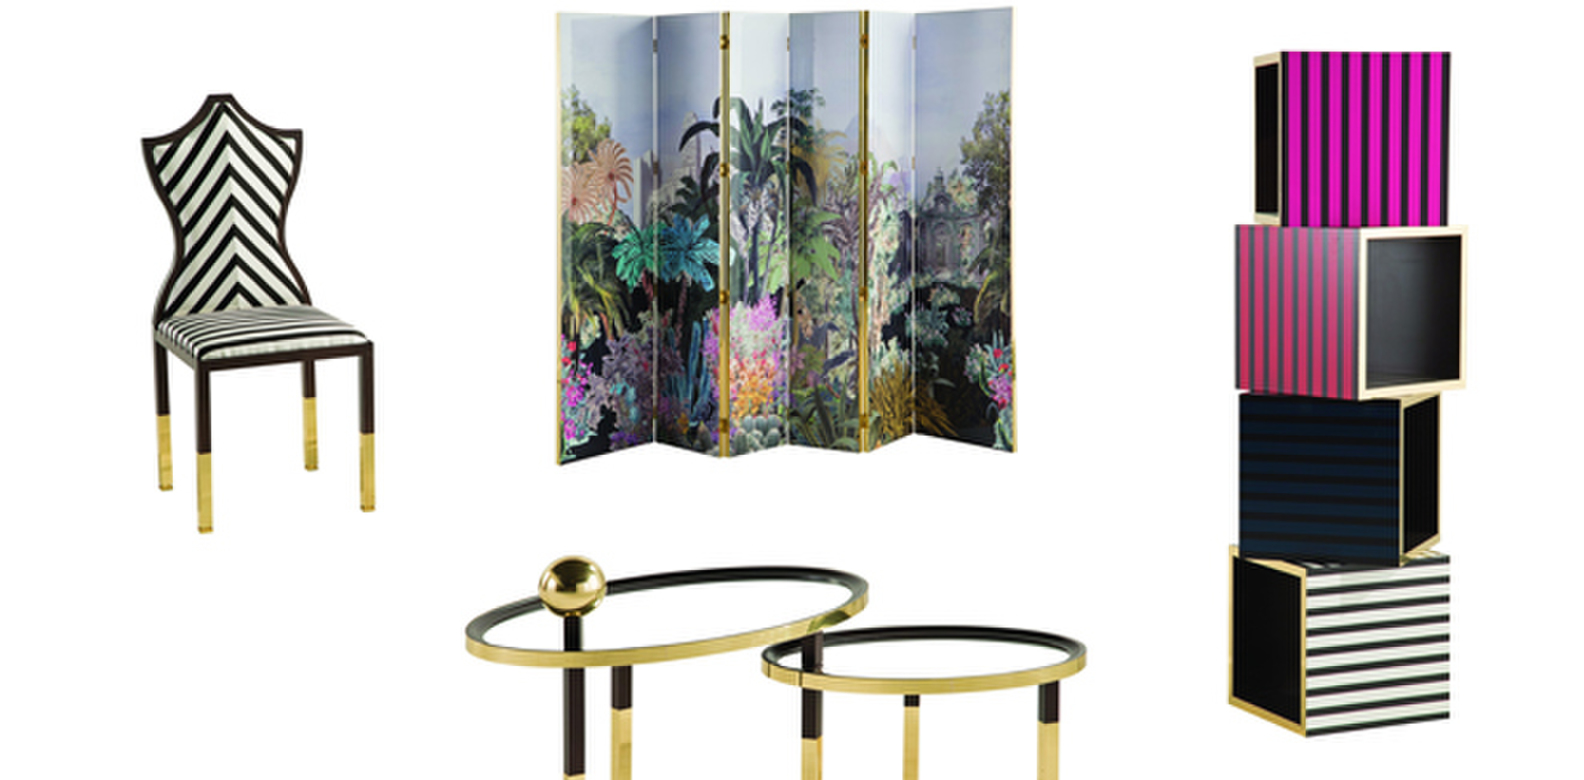 roche bobois and christian lacroix collaborate for furniture collection singapore tatler. Black Bedroom Furniture Sets. Home Design Ideas